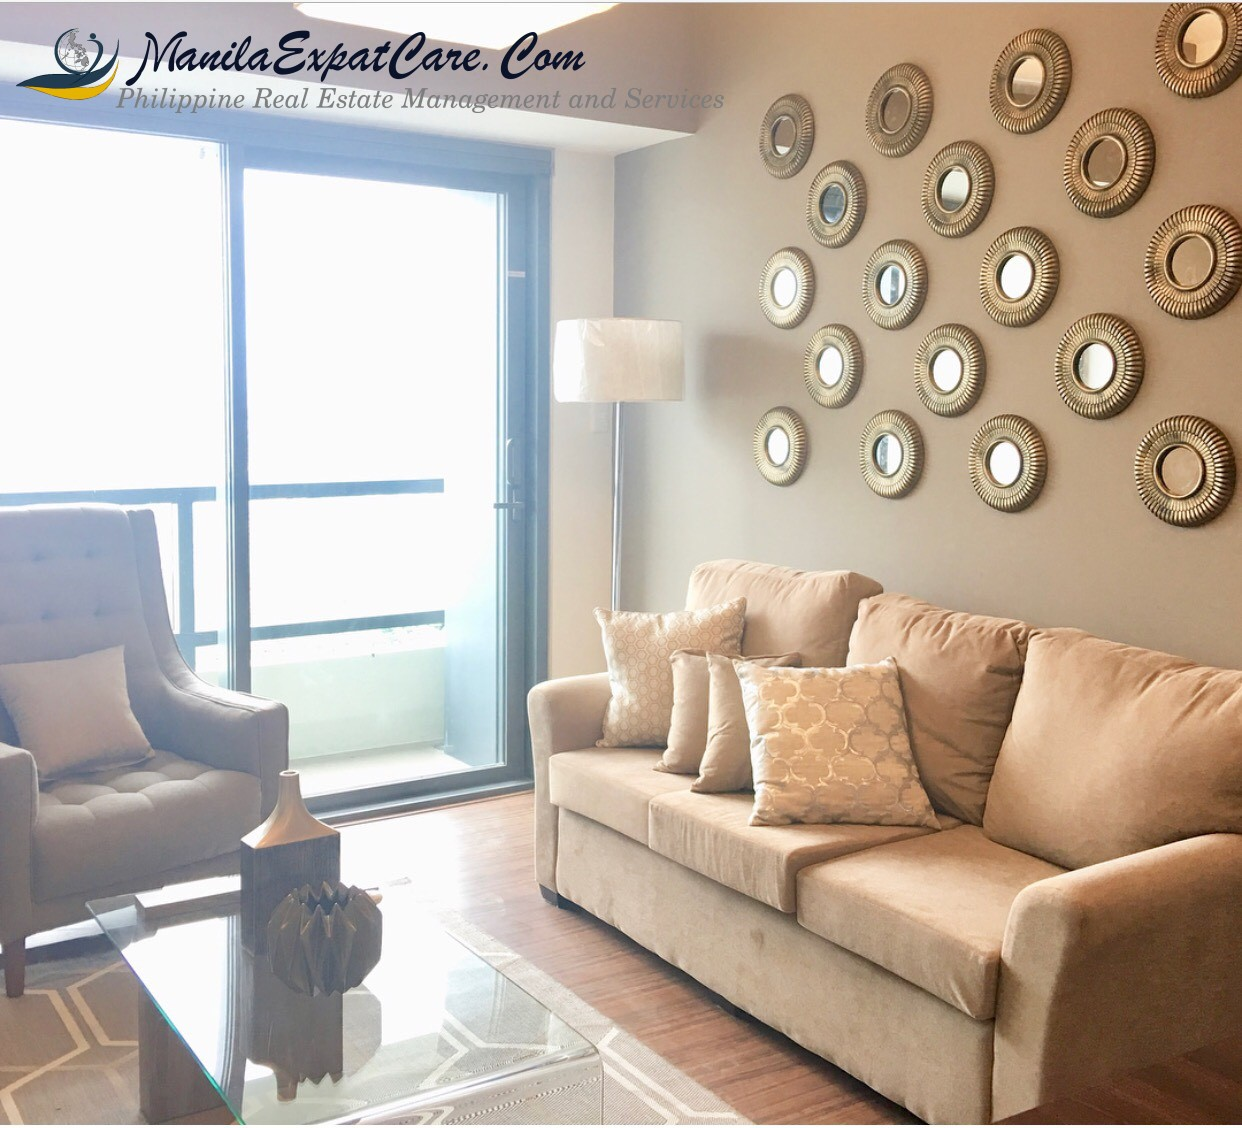 For Rent: Salcedo 1 Bedroom Modern Condo with balcony,Makati